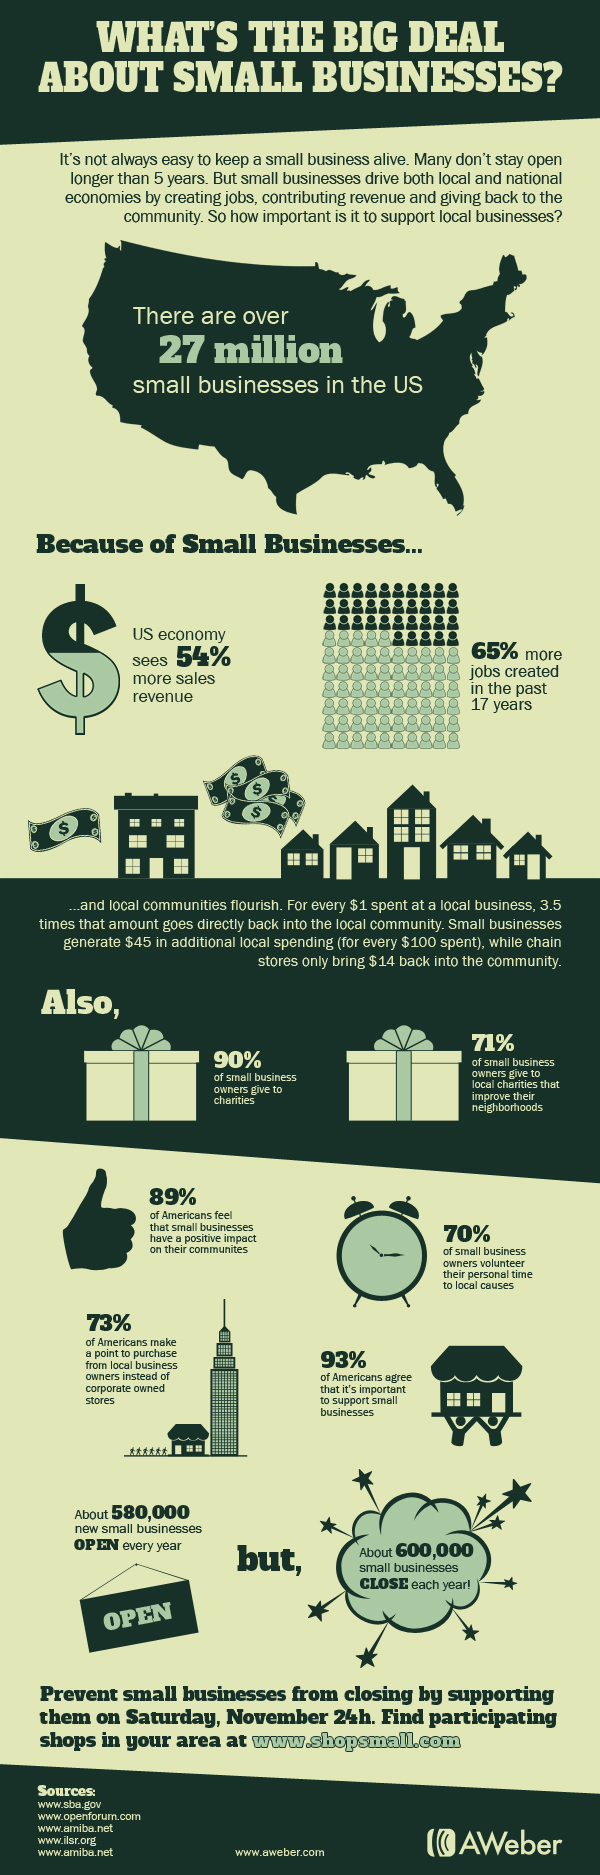 Small Business Saturday: 14 Reasons To Shop Small [Infographic]